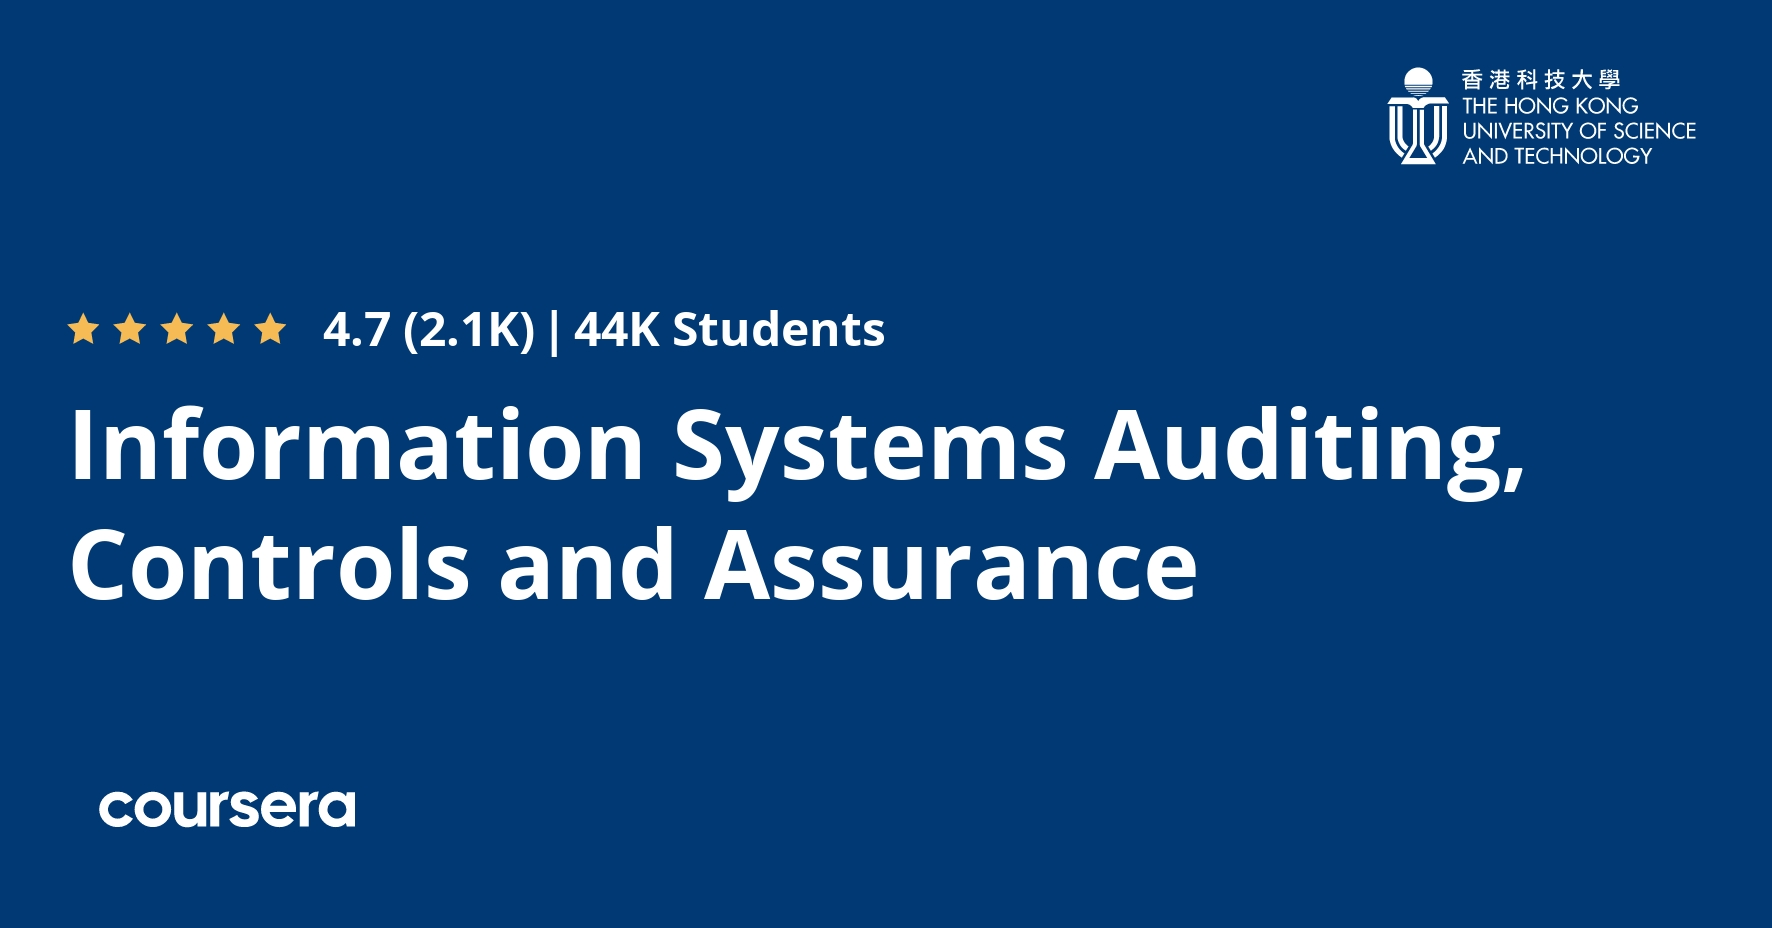 Information Systems Auditing, Controls and Assurance (Coursera)